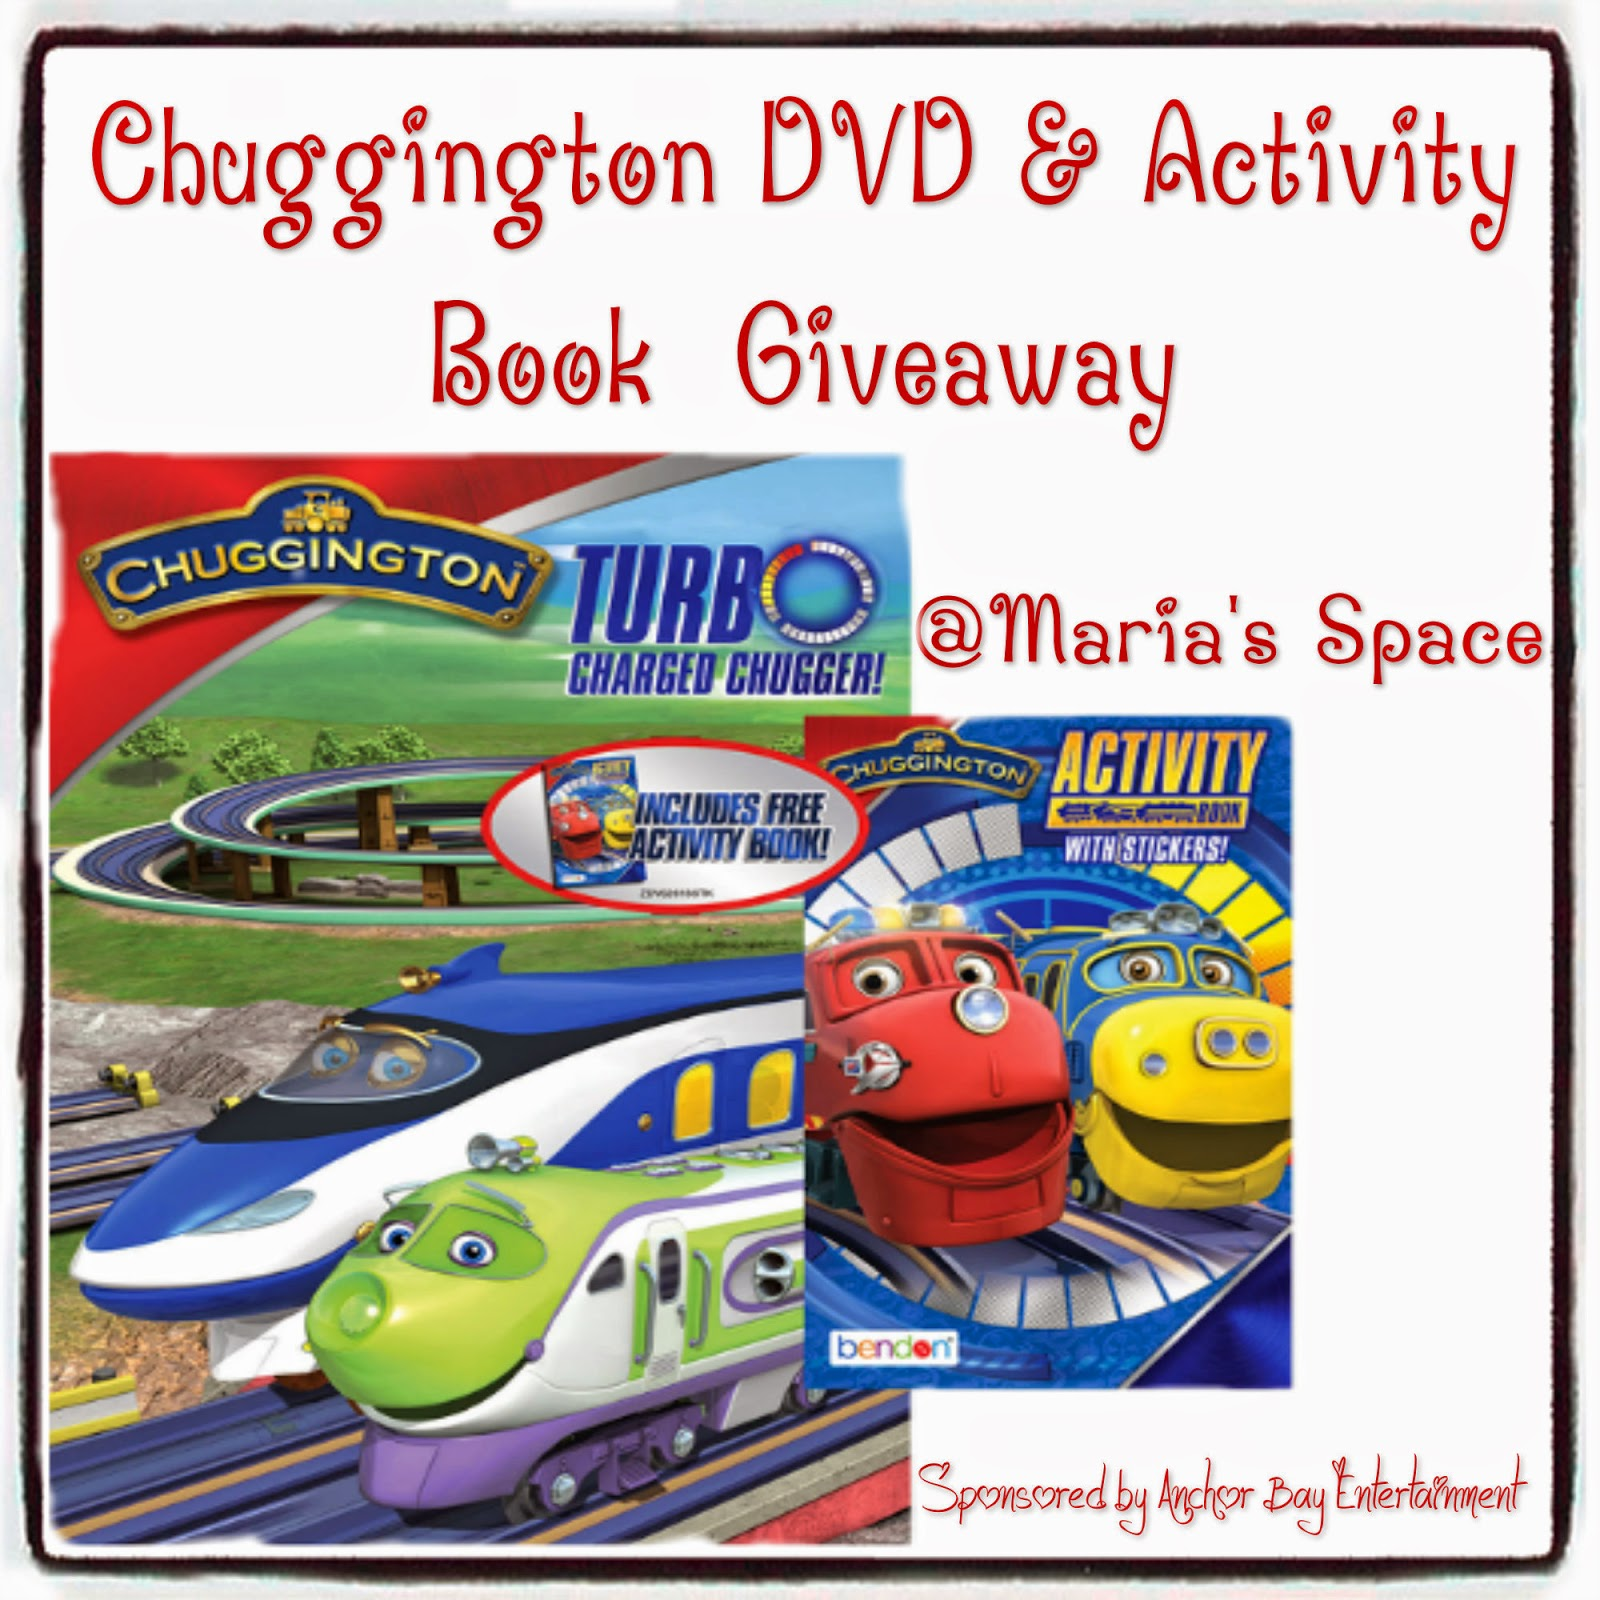 maria u0027s space chuggington turbo charged chugger dvd u0026 activity